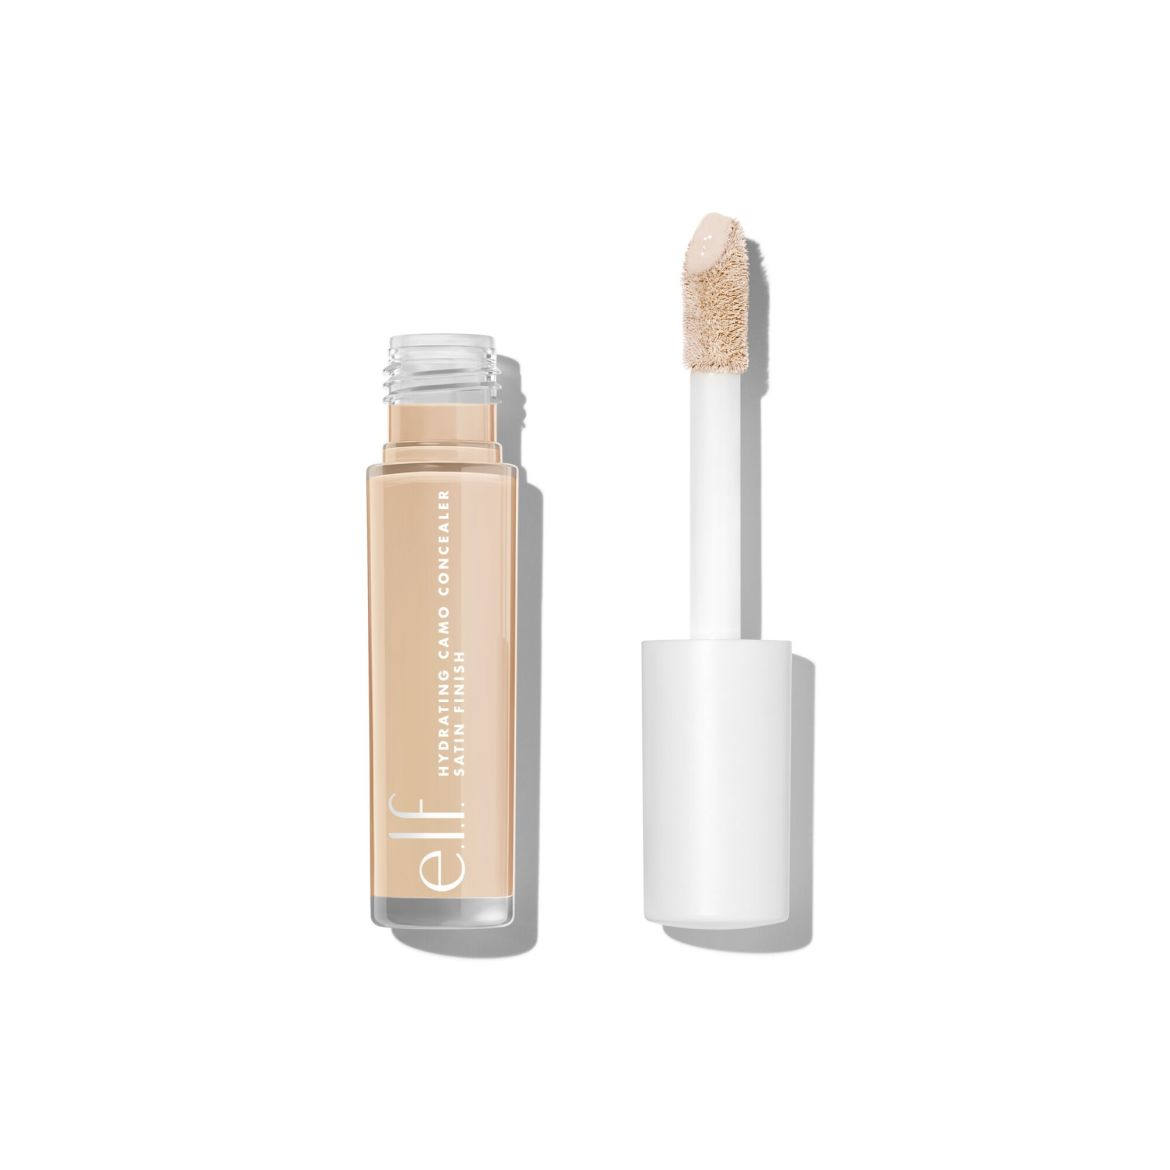 Top 15 Makeup Products for a Full Beat